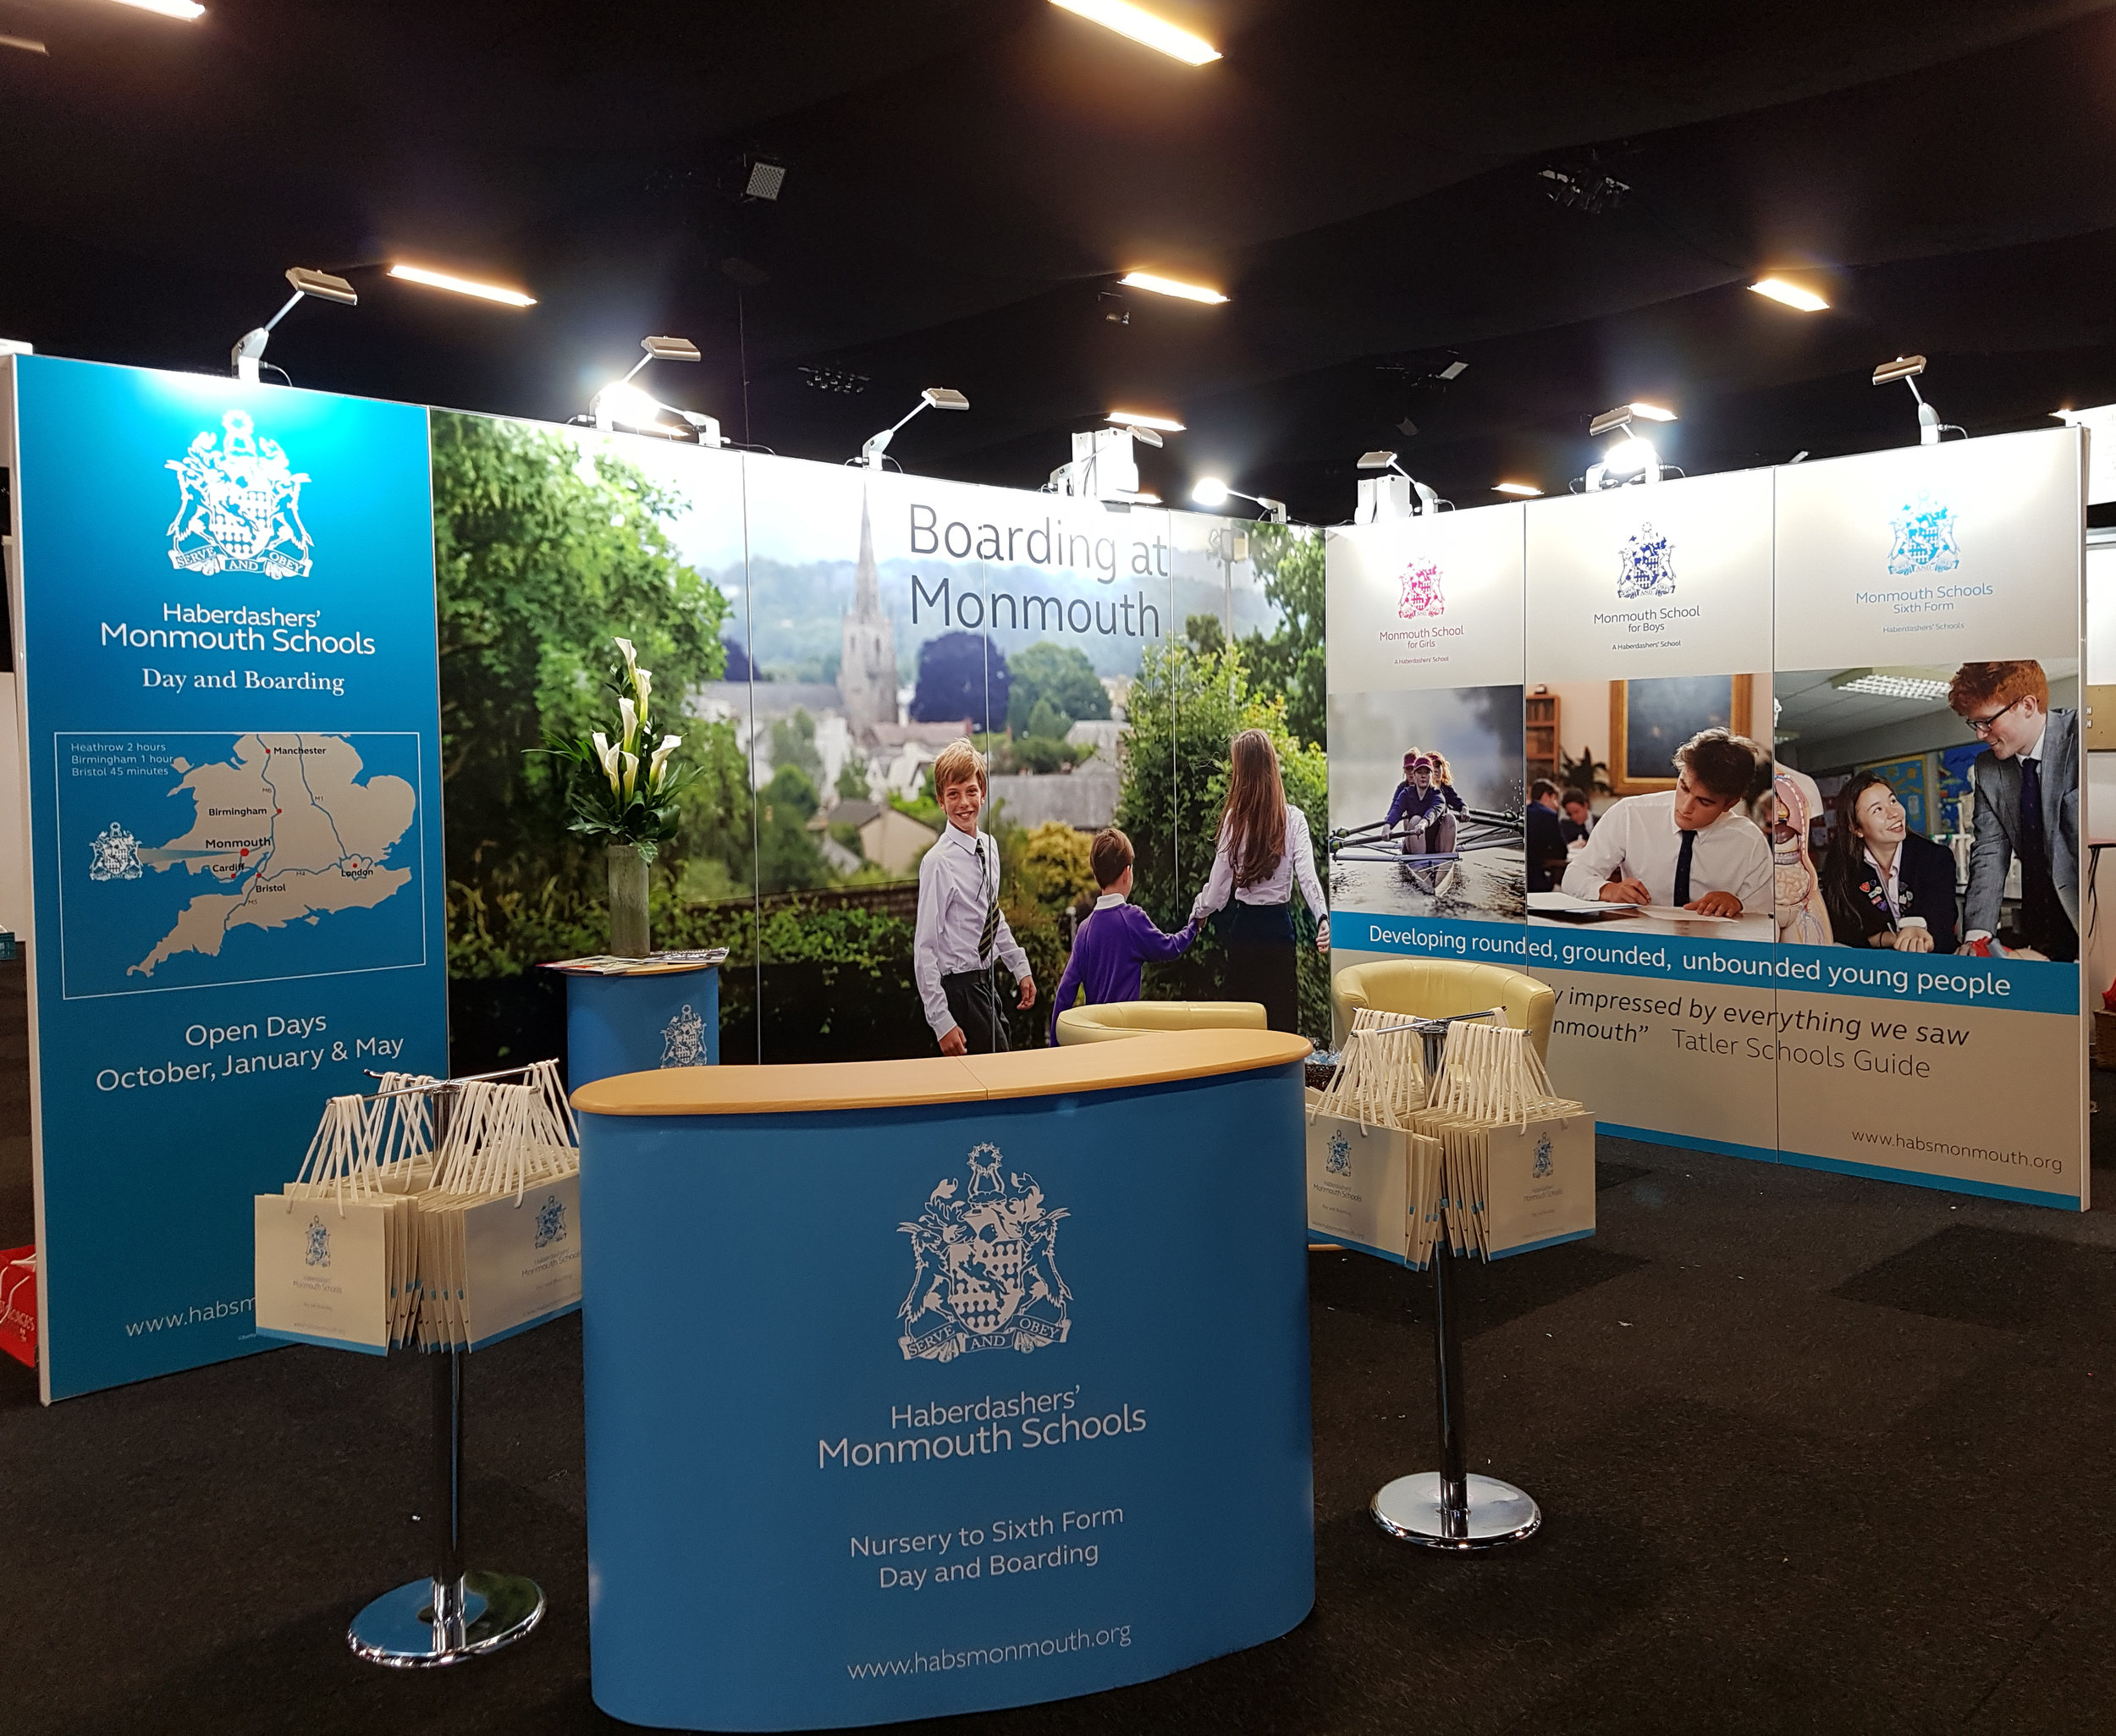 Haberdashers' Monmouth Schools, exhibition stand at Independent Schools Show 2017